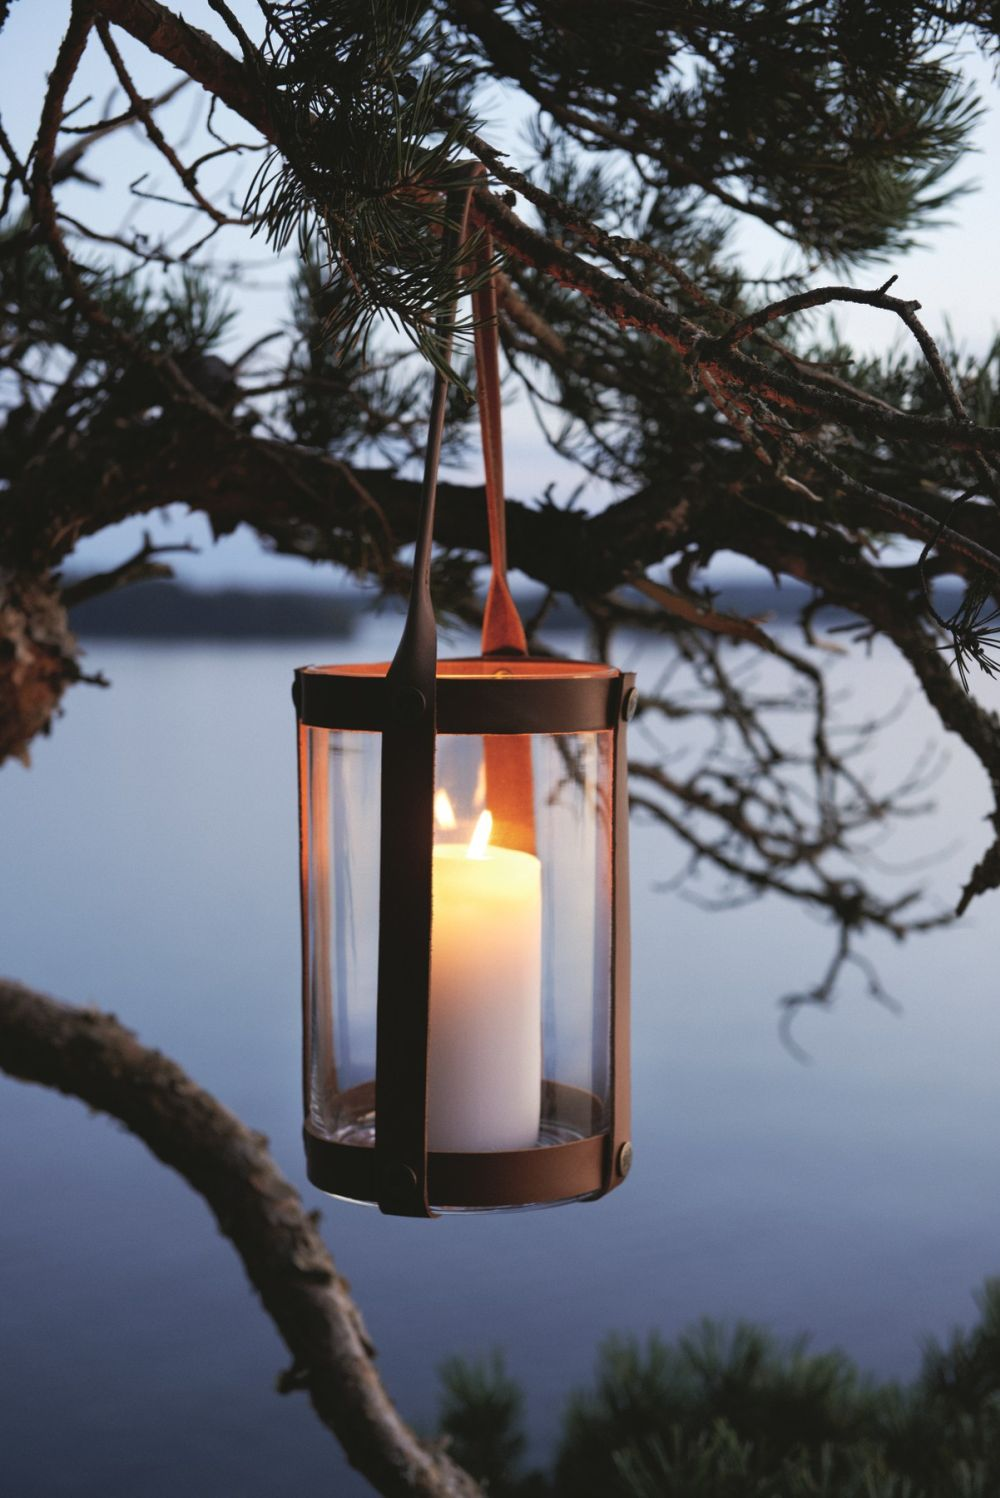 1560499823 948 15 beautiful outdoor lanterns to brighten up your evenings - 15 Beautiful Outdoor Lanterns To Brighten Up Your Evenings